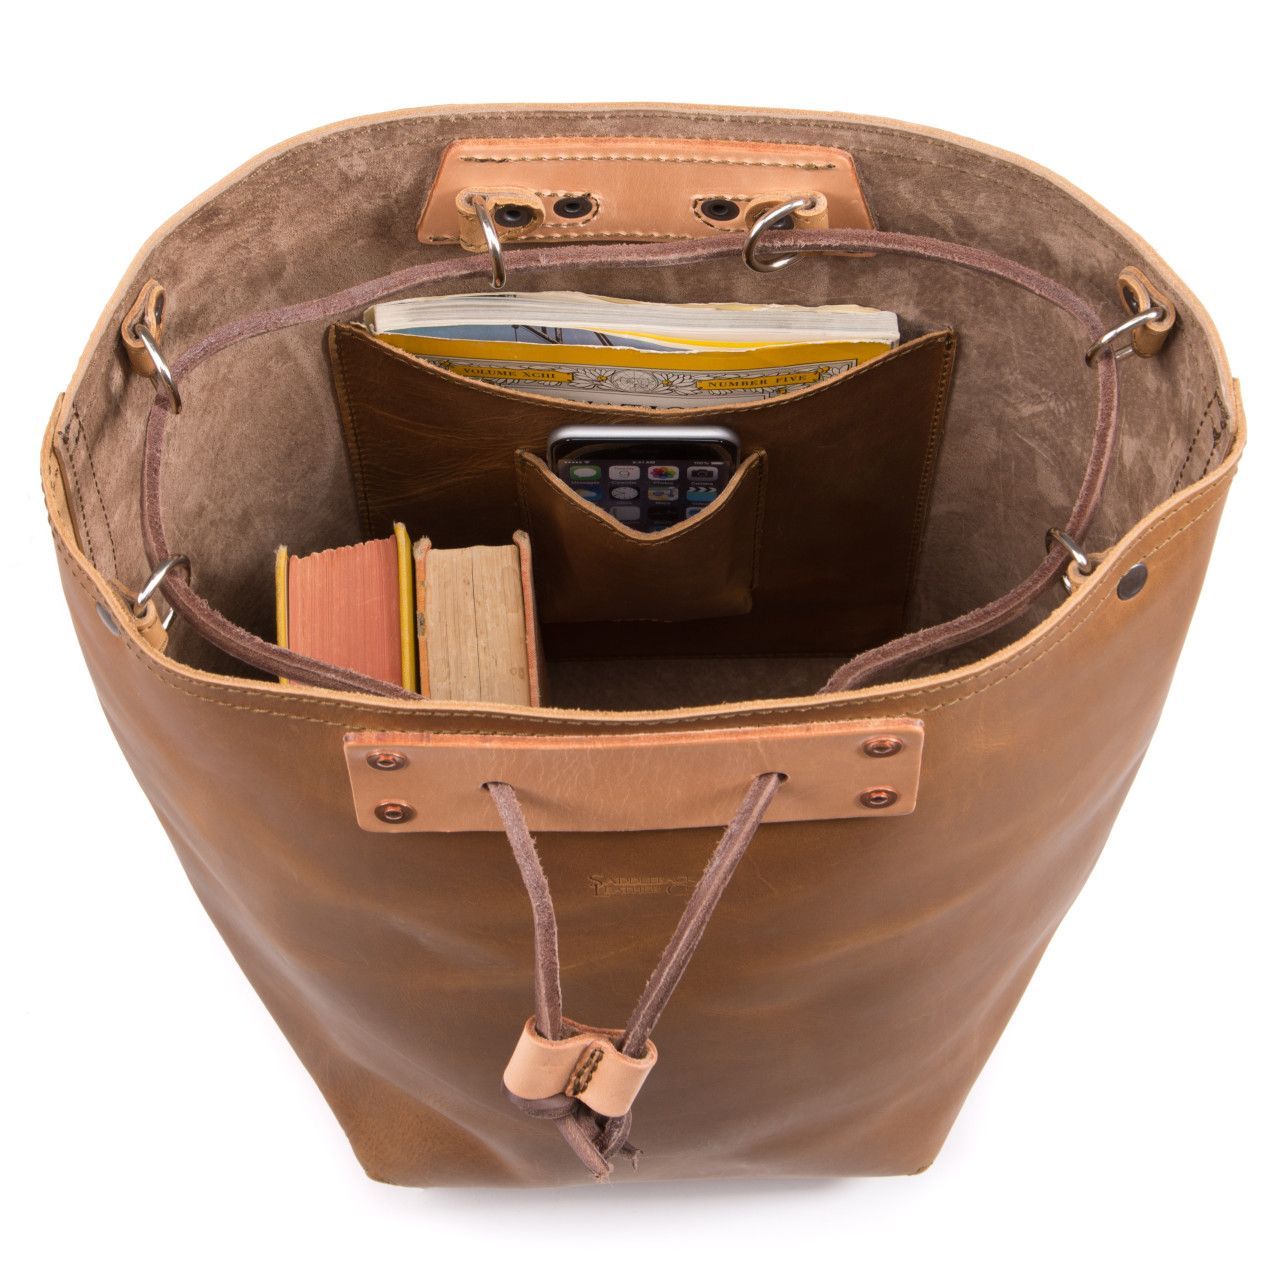 Two books, iphone, map in the inside of the bucket drawstring leather backpack in tobacco leather